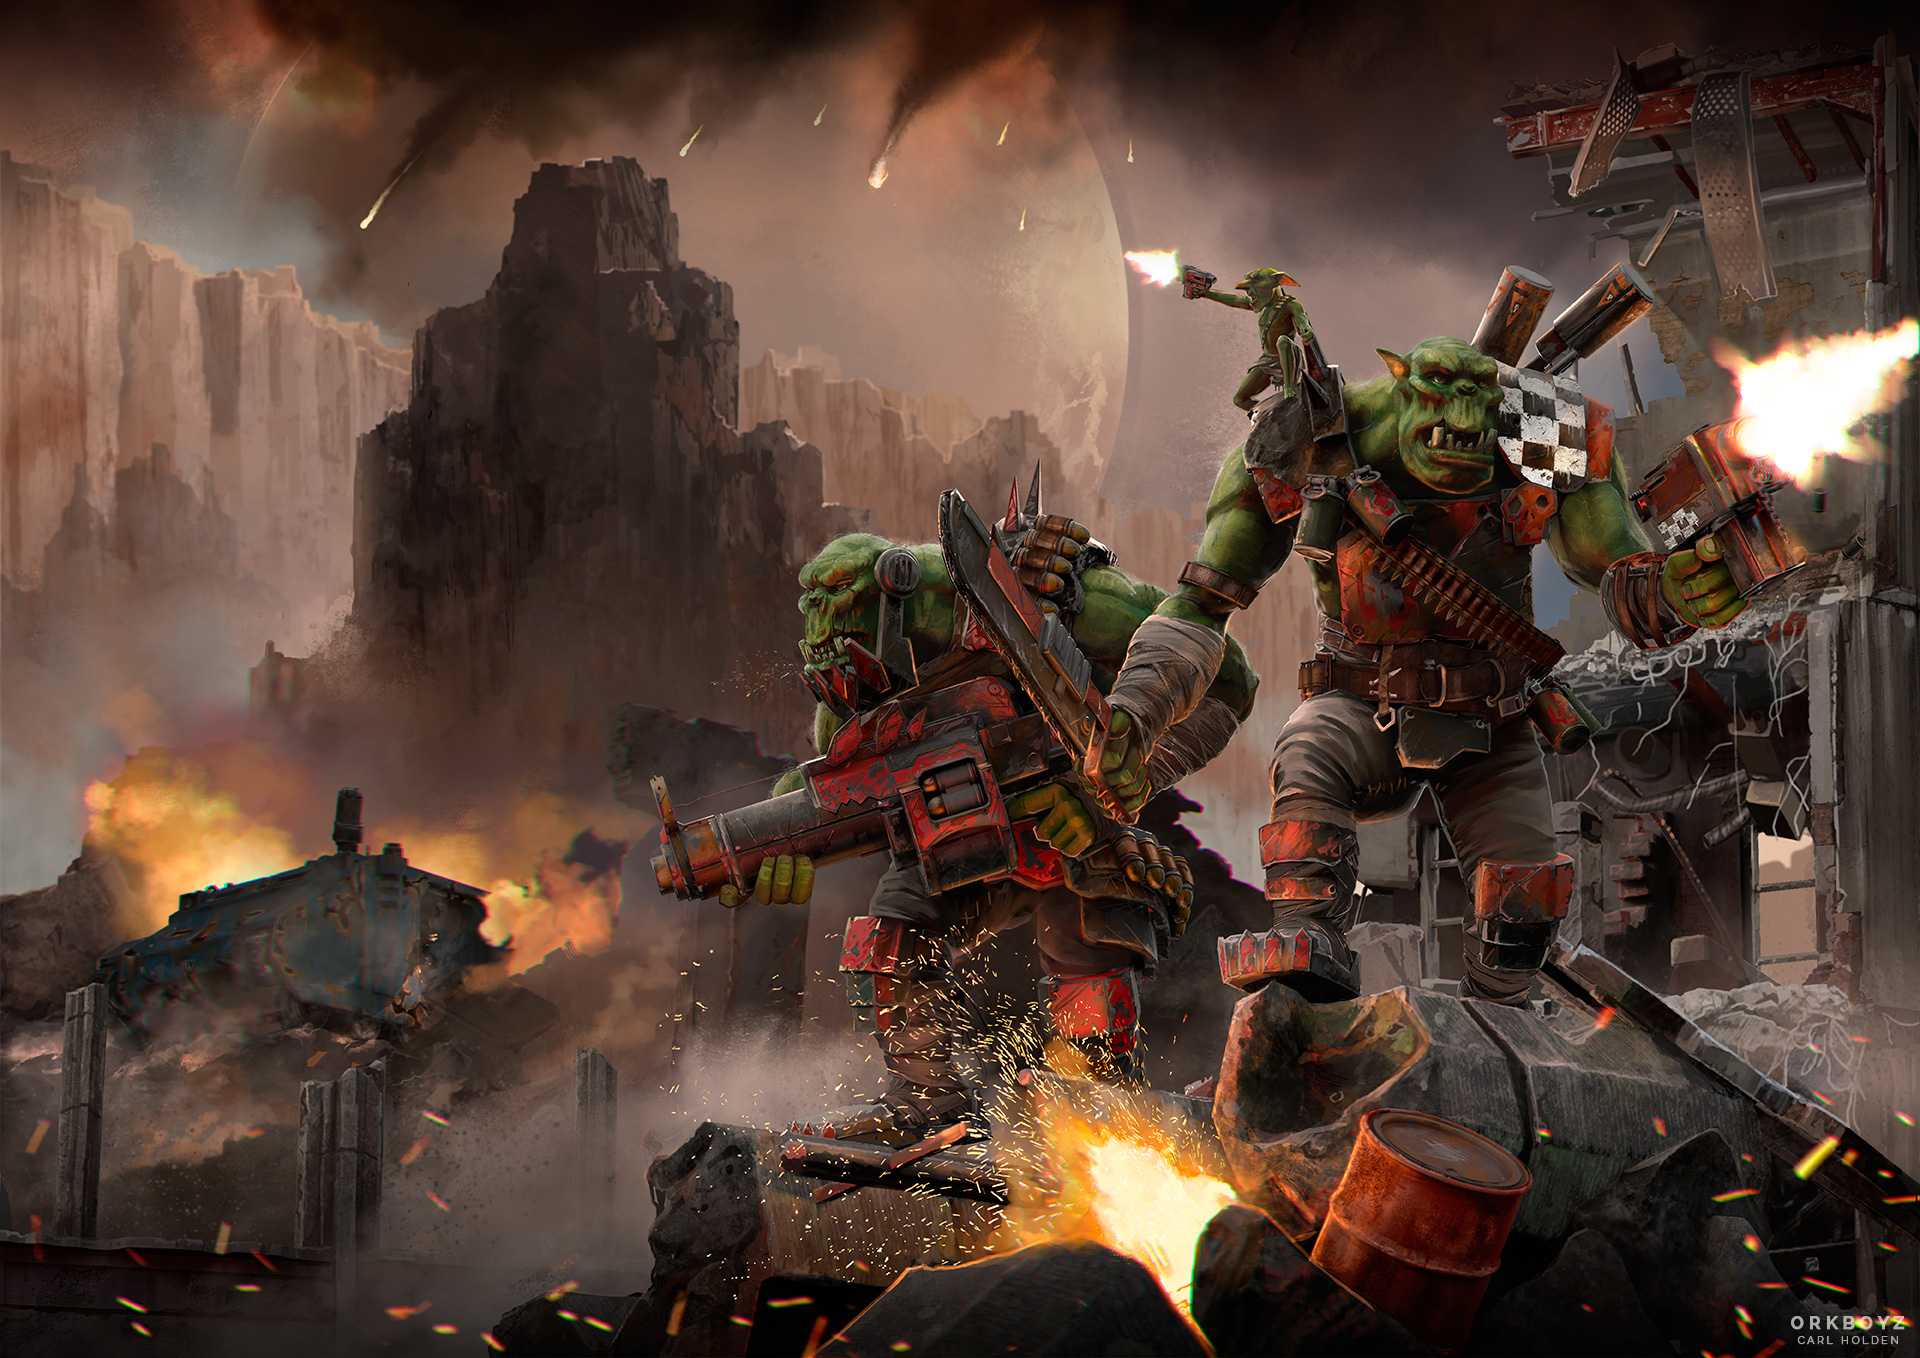 Ork Boyz Warhammer 40K by CarlHolden on DeviantArt